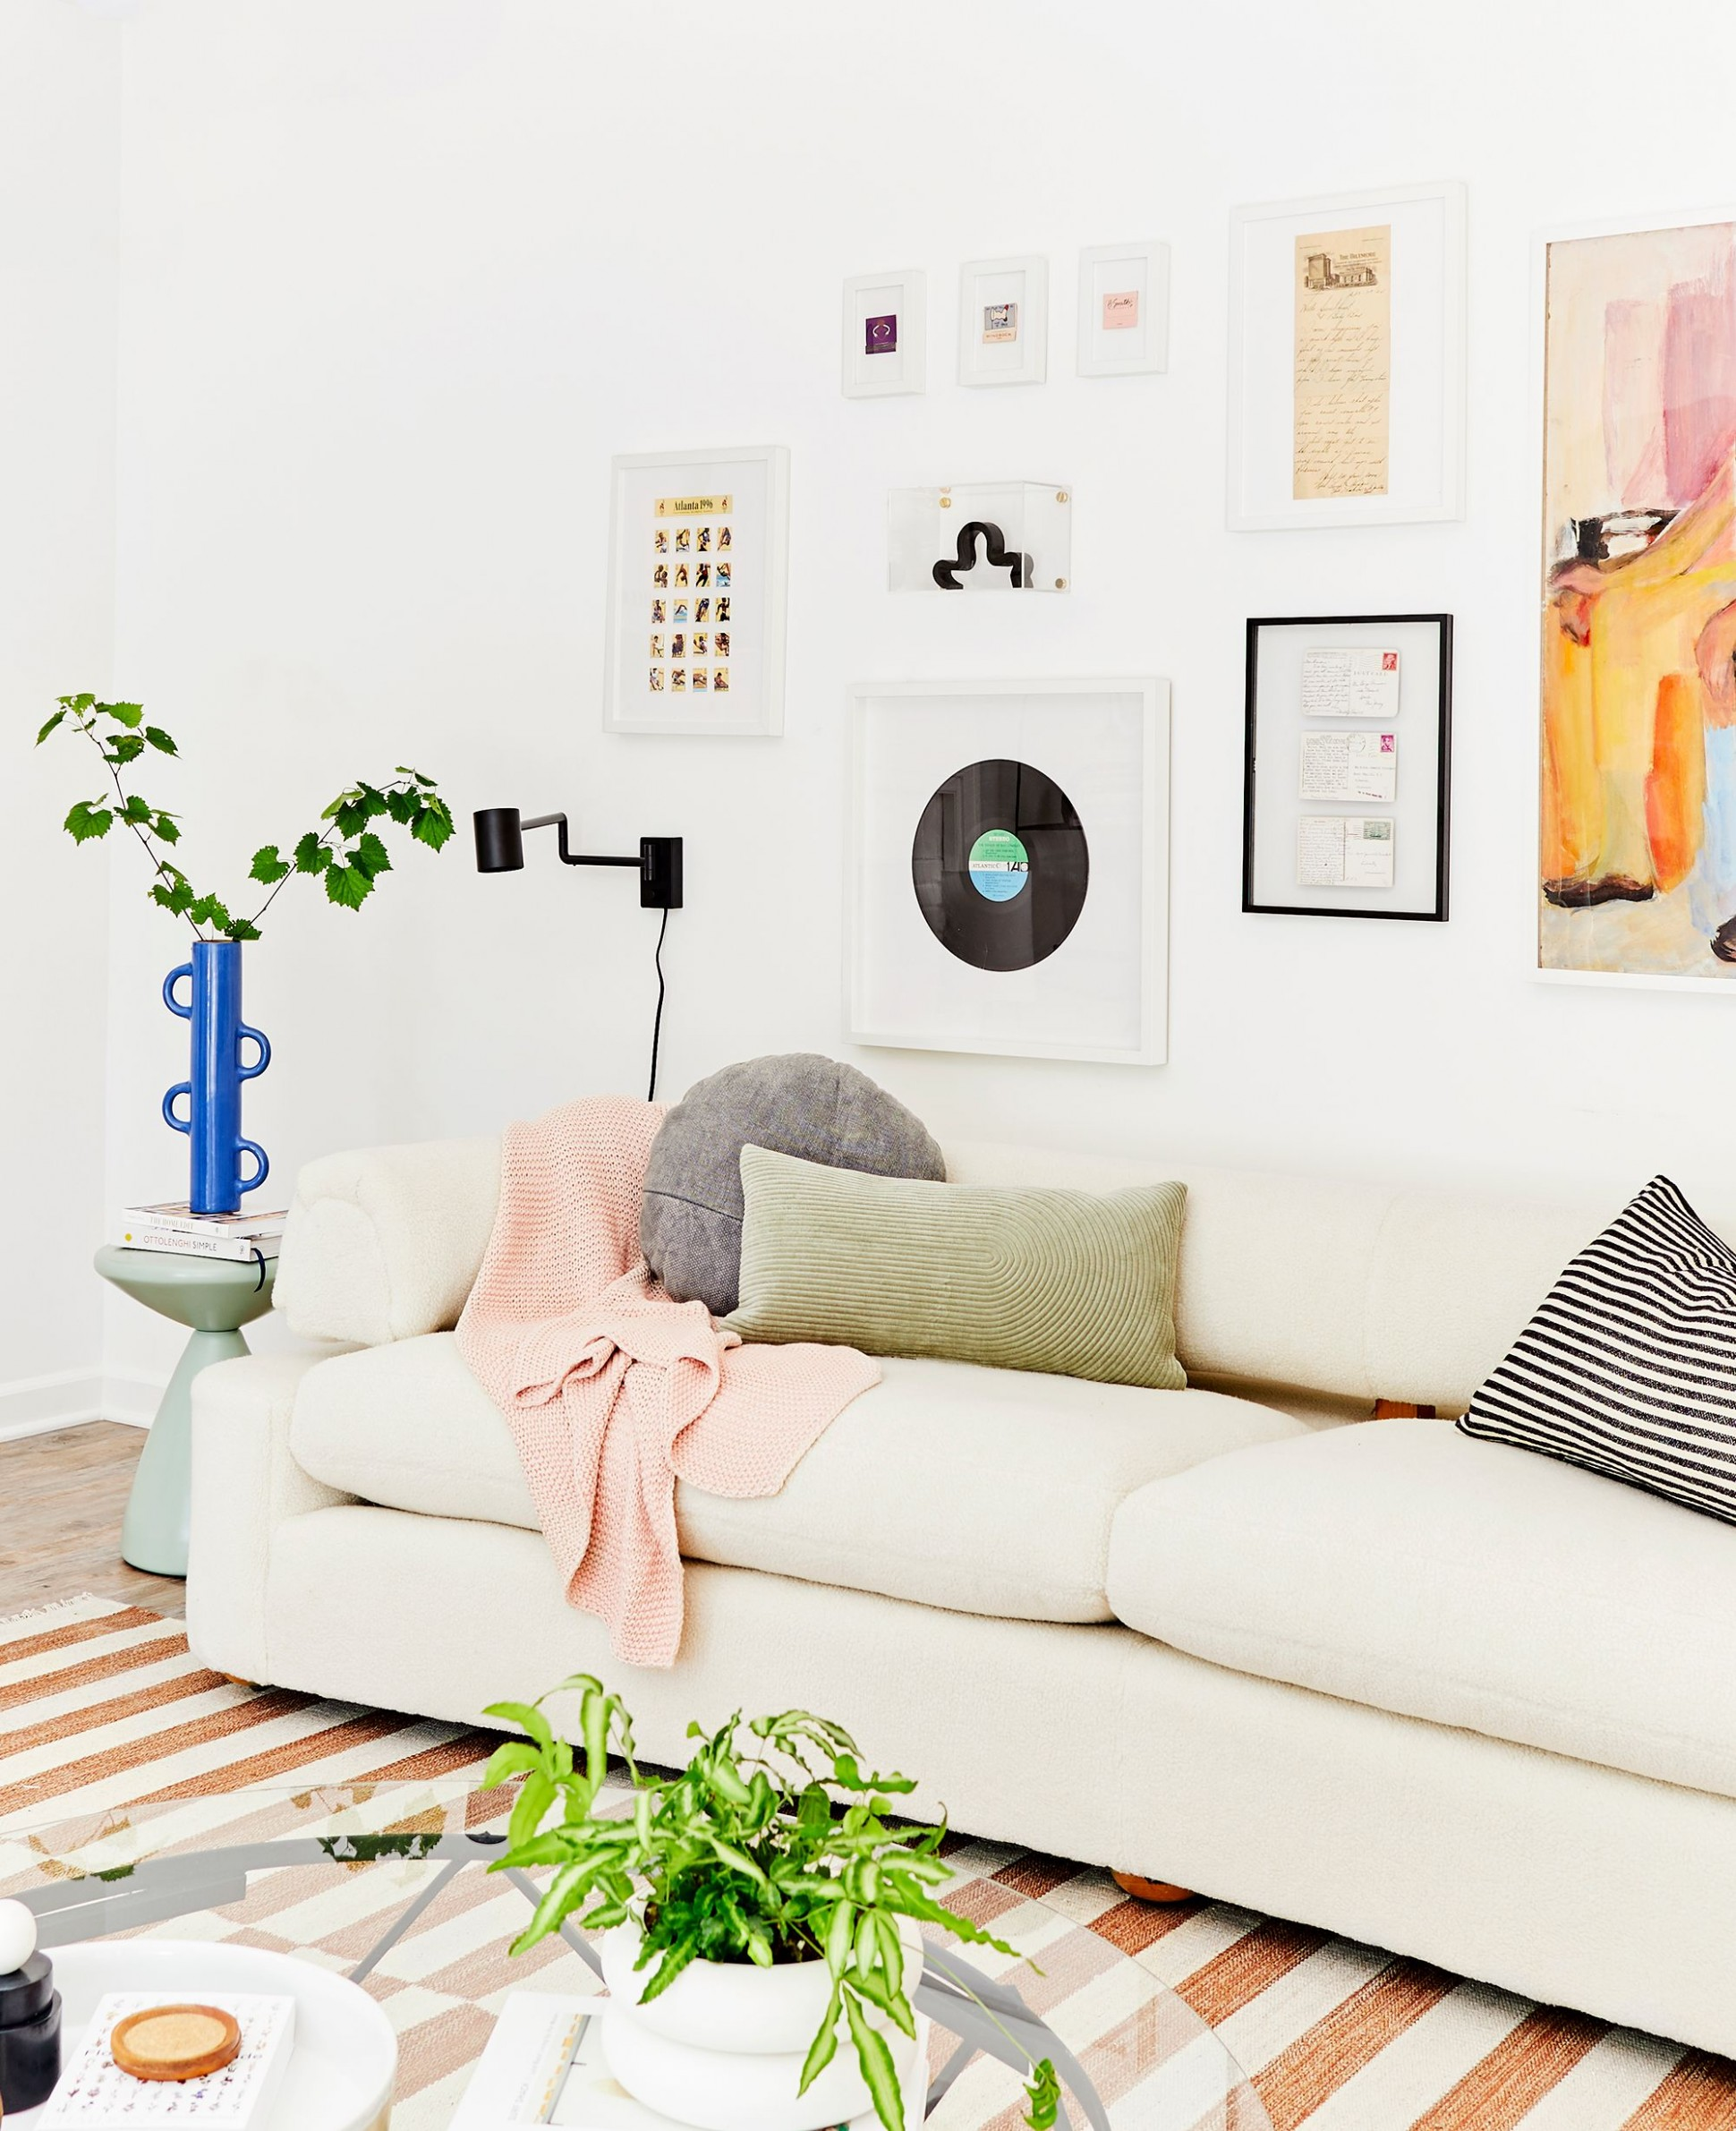 How to Decorate Your First Apartment - First Apartment Decorating  - Apartment Design Basics